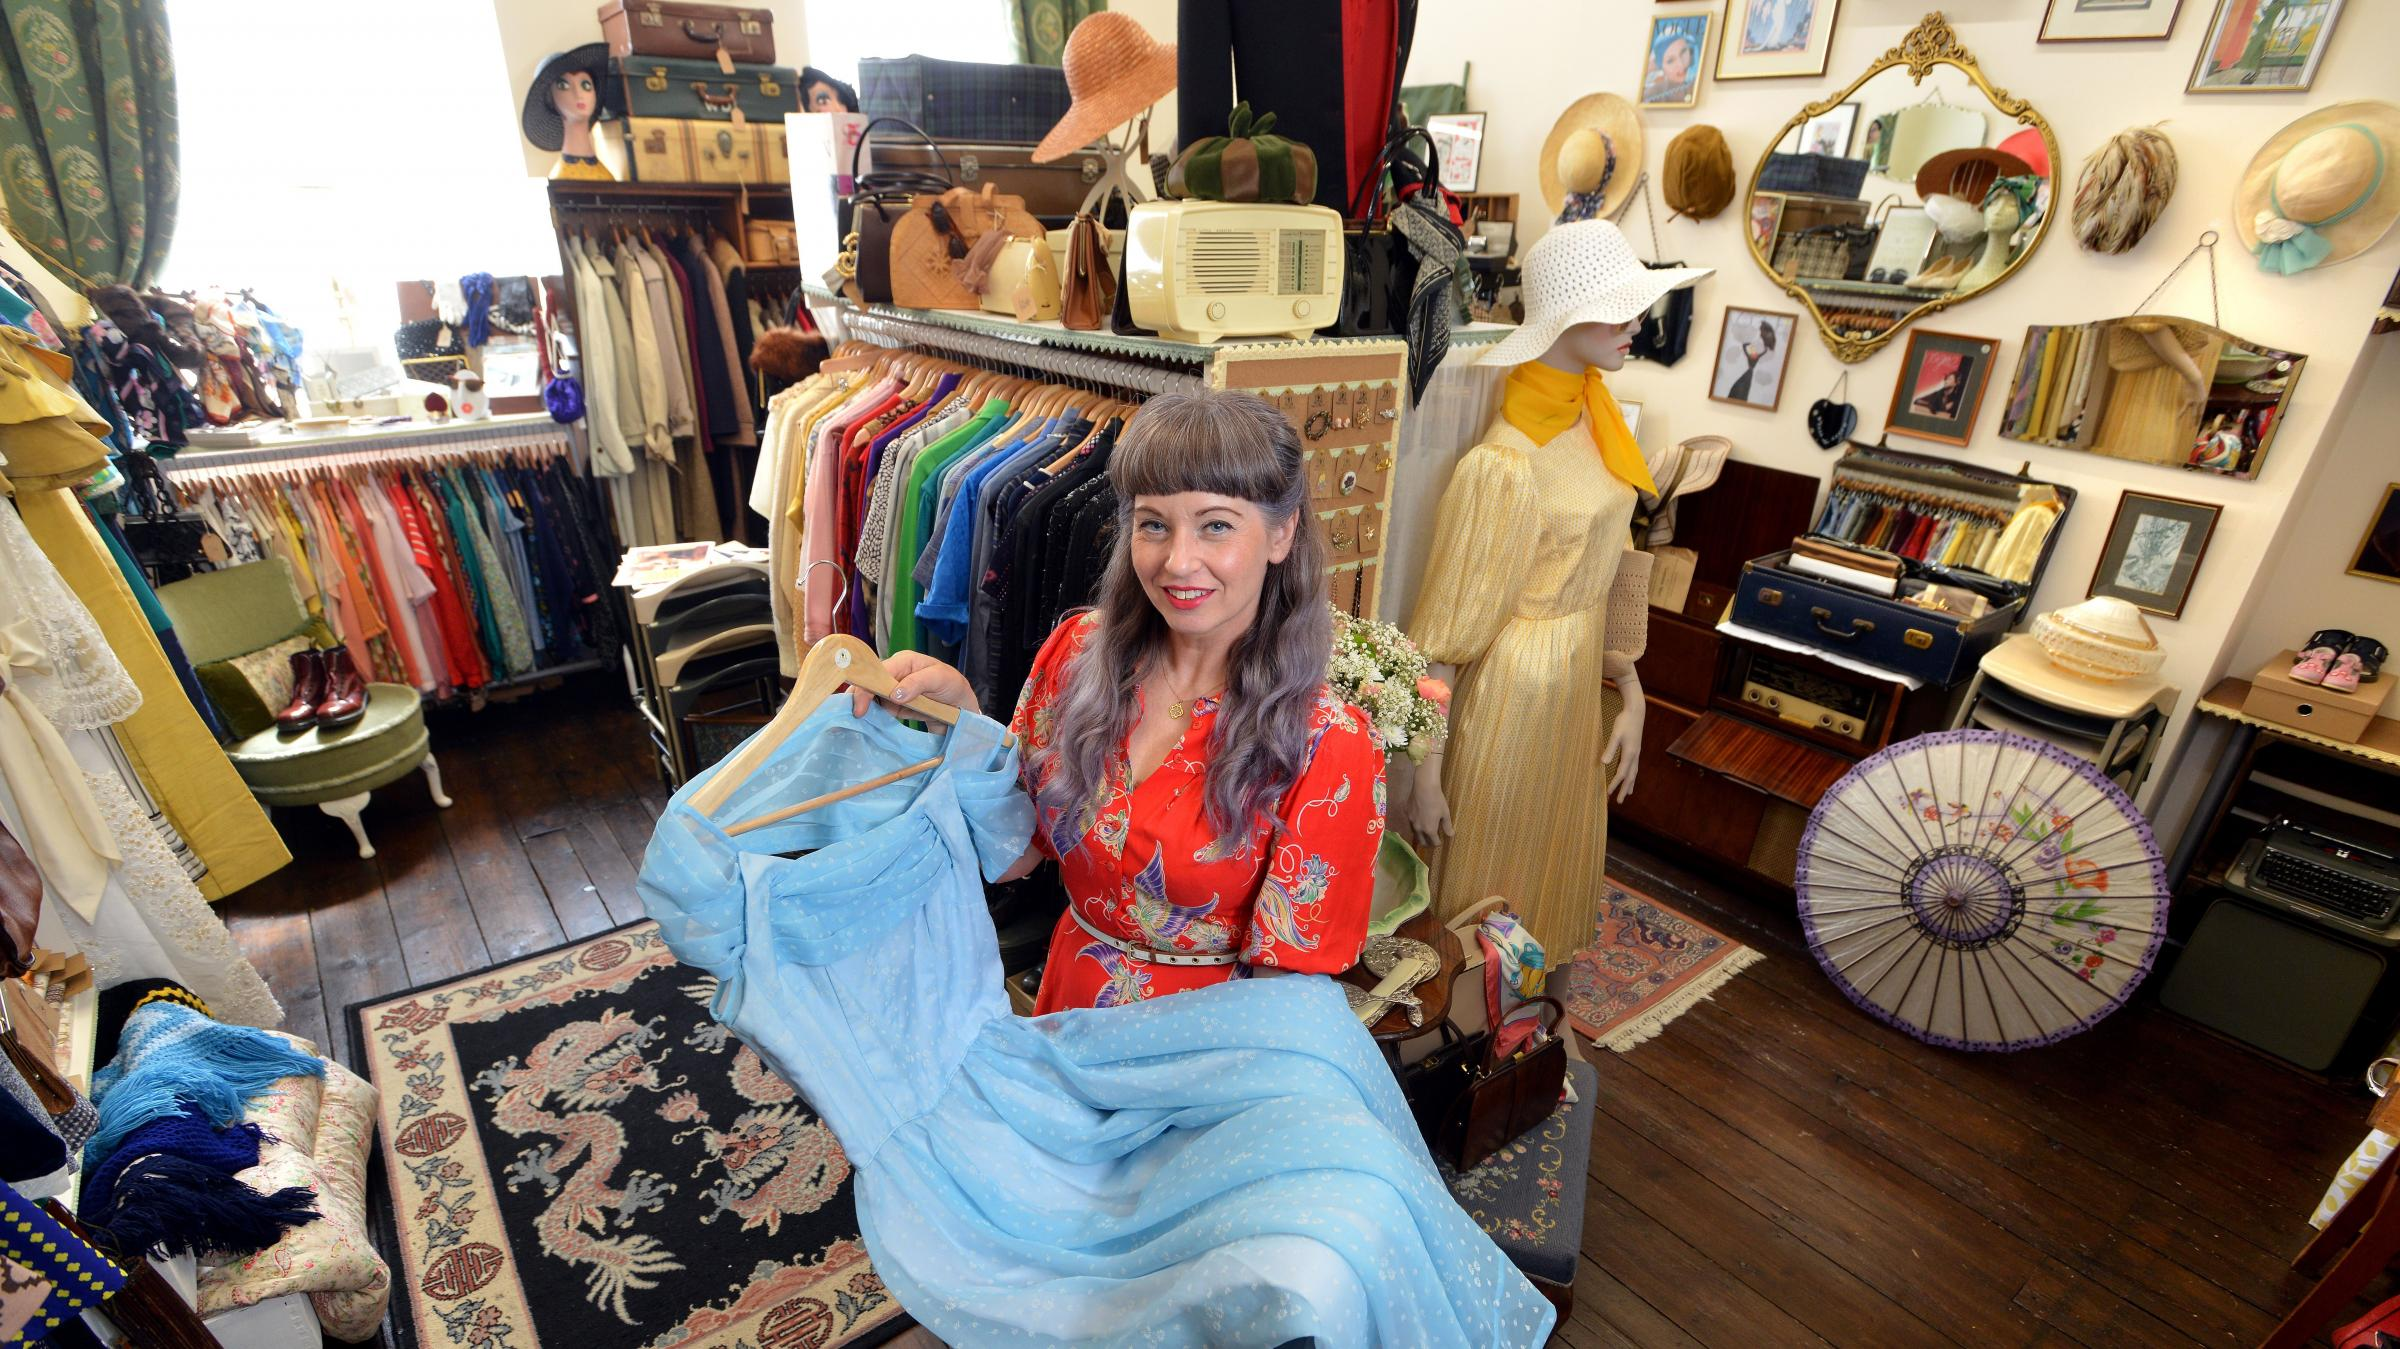 Bradford businesswoman Trudy Fielding has launched her own vintage fashion studio, Vintage-Beau, in Little Germany